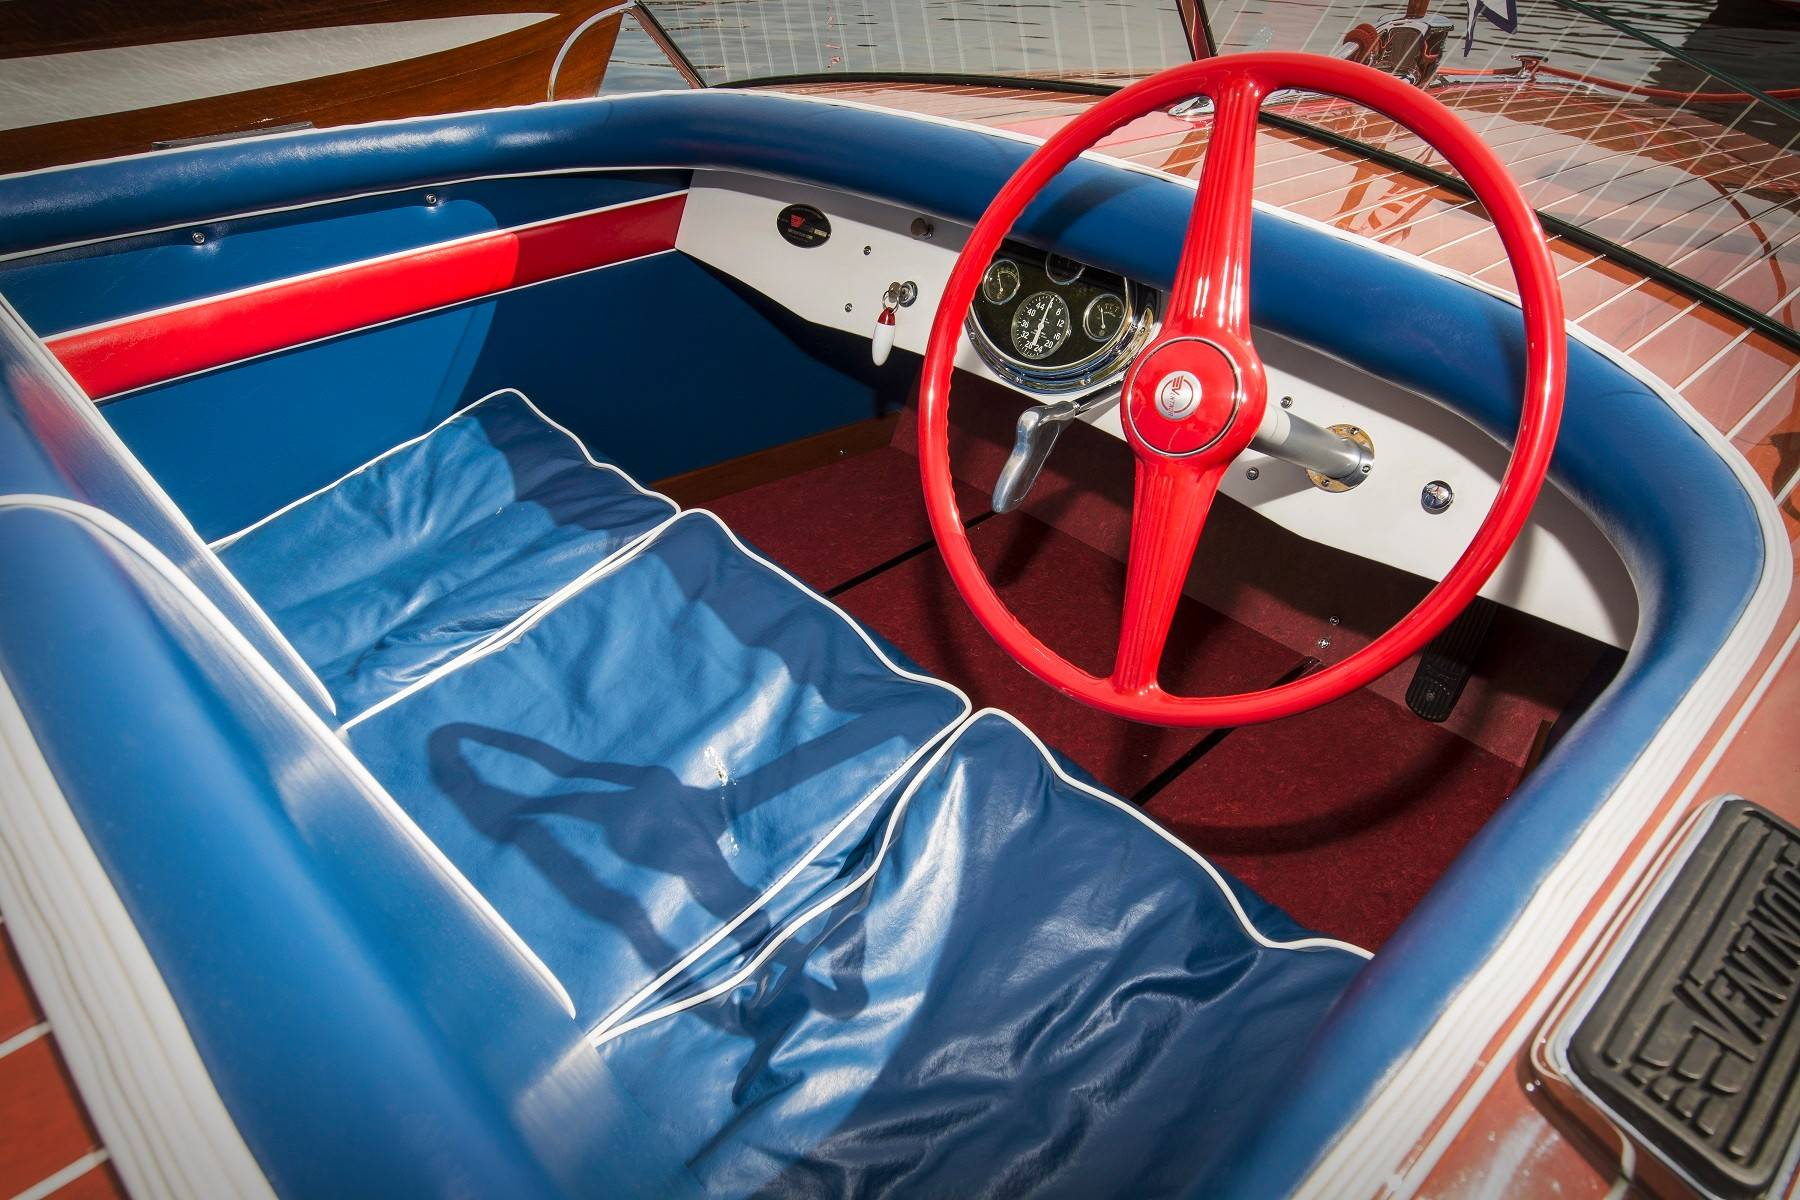 The boat's sides, keel, dashboard and hardware are original.